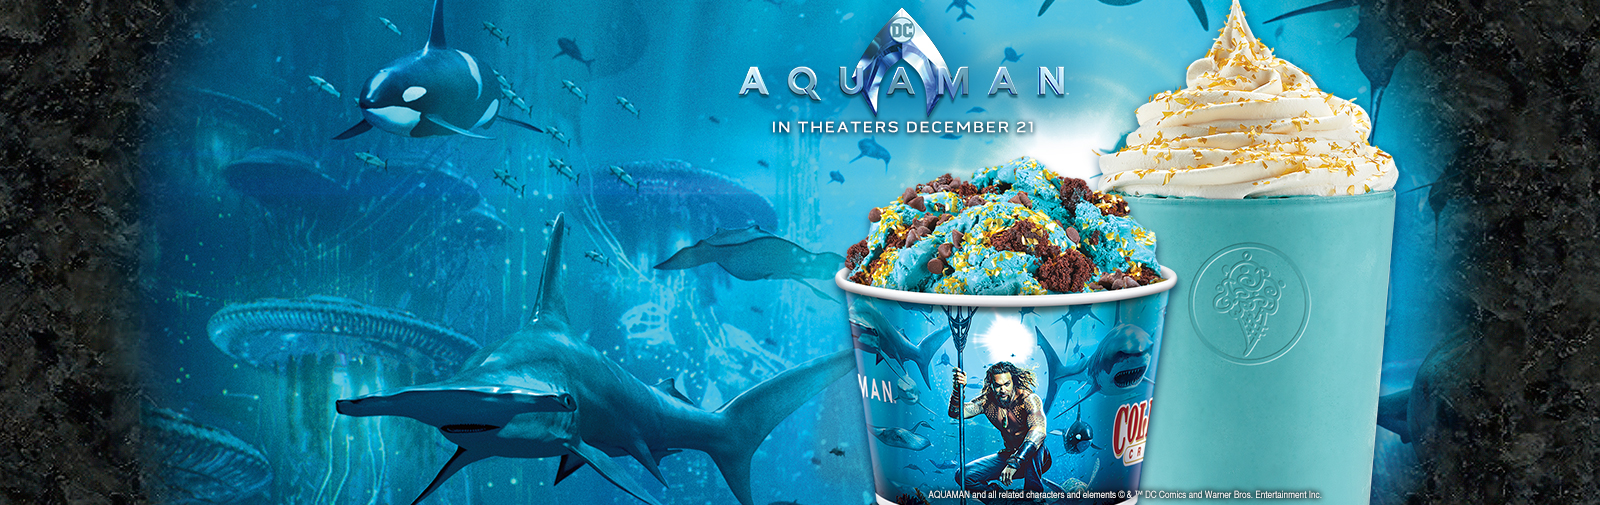 Try our new Blue Velvet Cake Ice Cream. Aquaman's Blue Velvet Brownie Creation™ or Aquaman's Blue Velvet Shake.